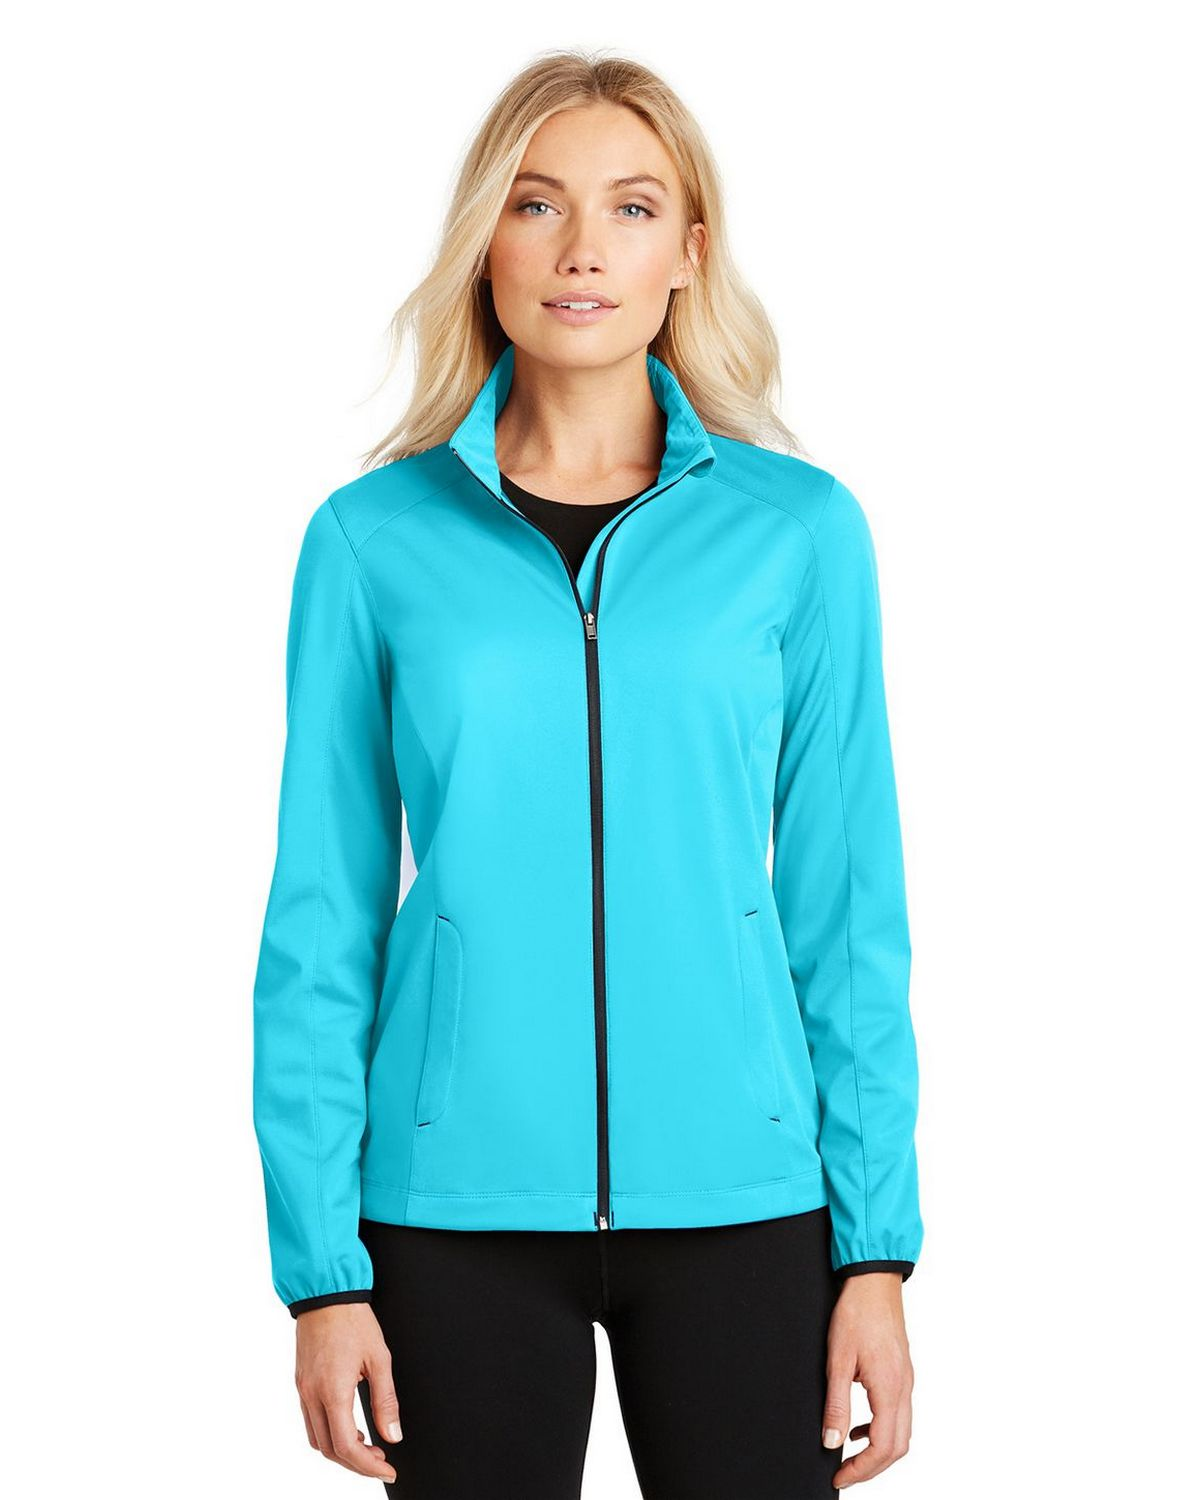 Port Authority L717 Ladies Active Soft Shell Jacket